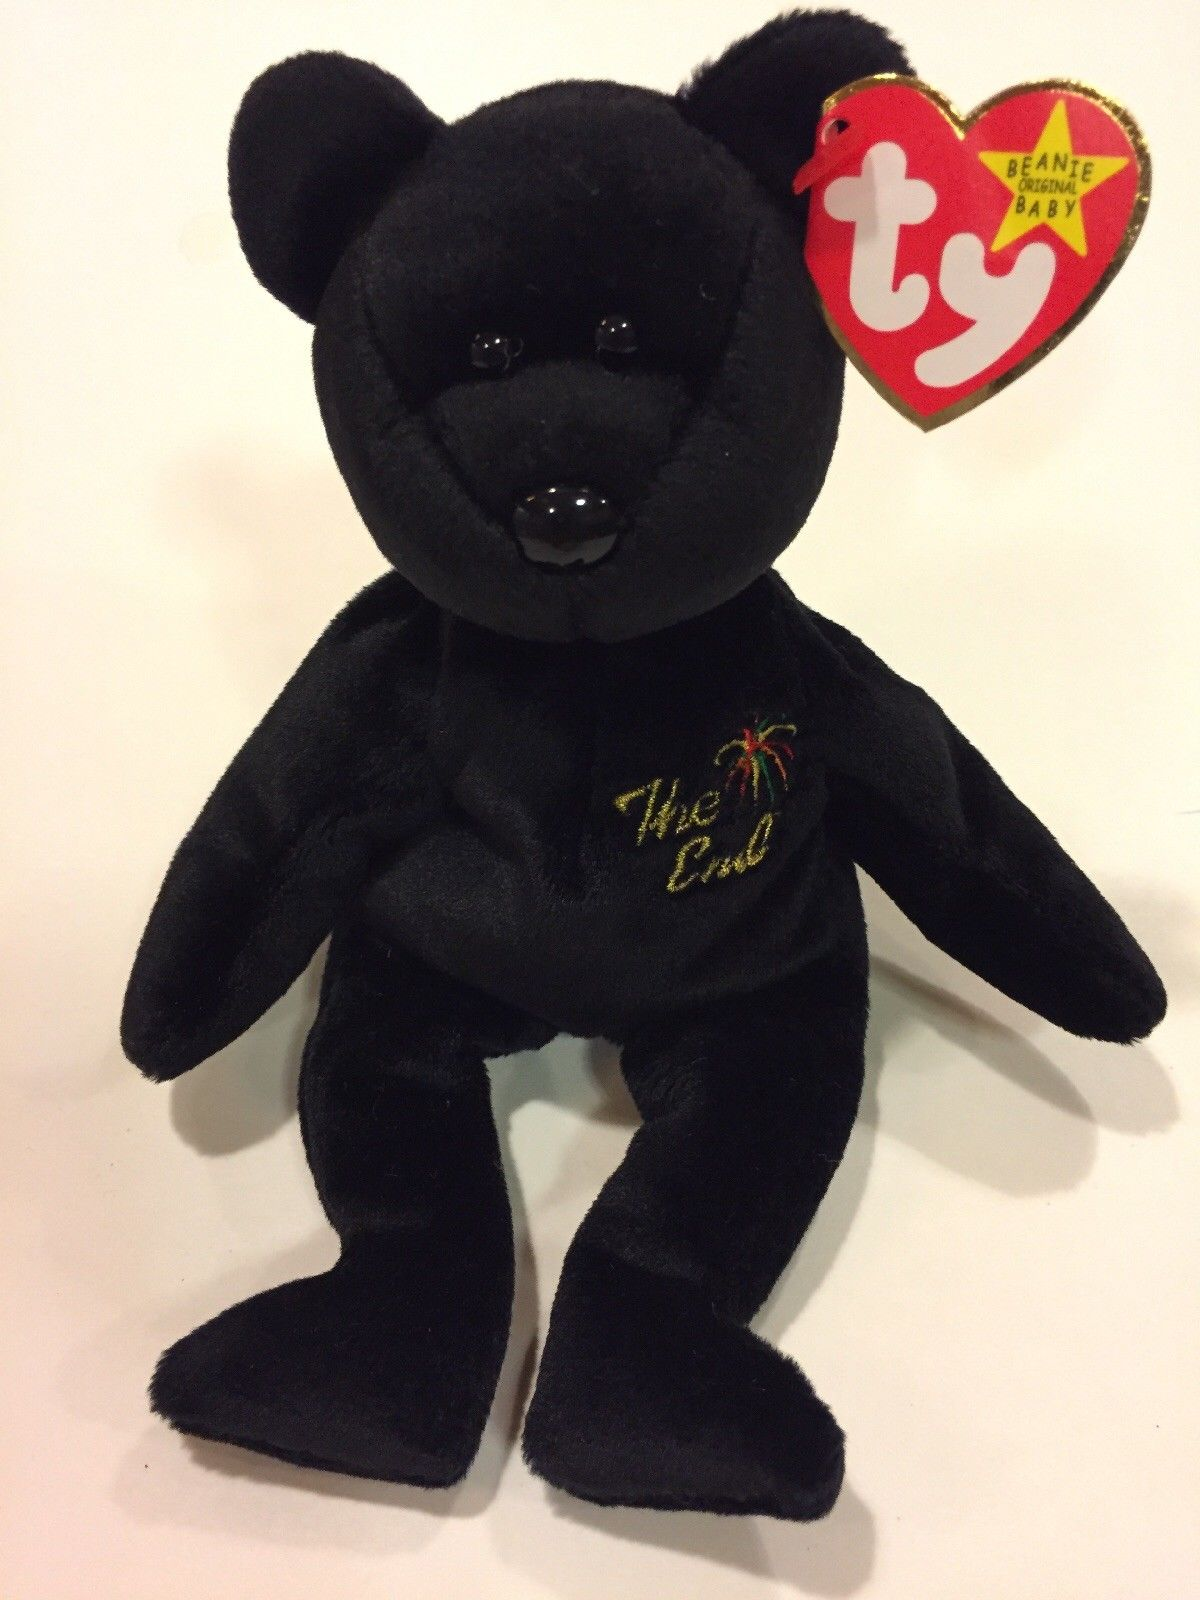 MINT with MINT TAGS TY MILLENIUM the BEAR BEANIE BABY